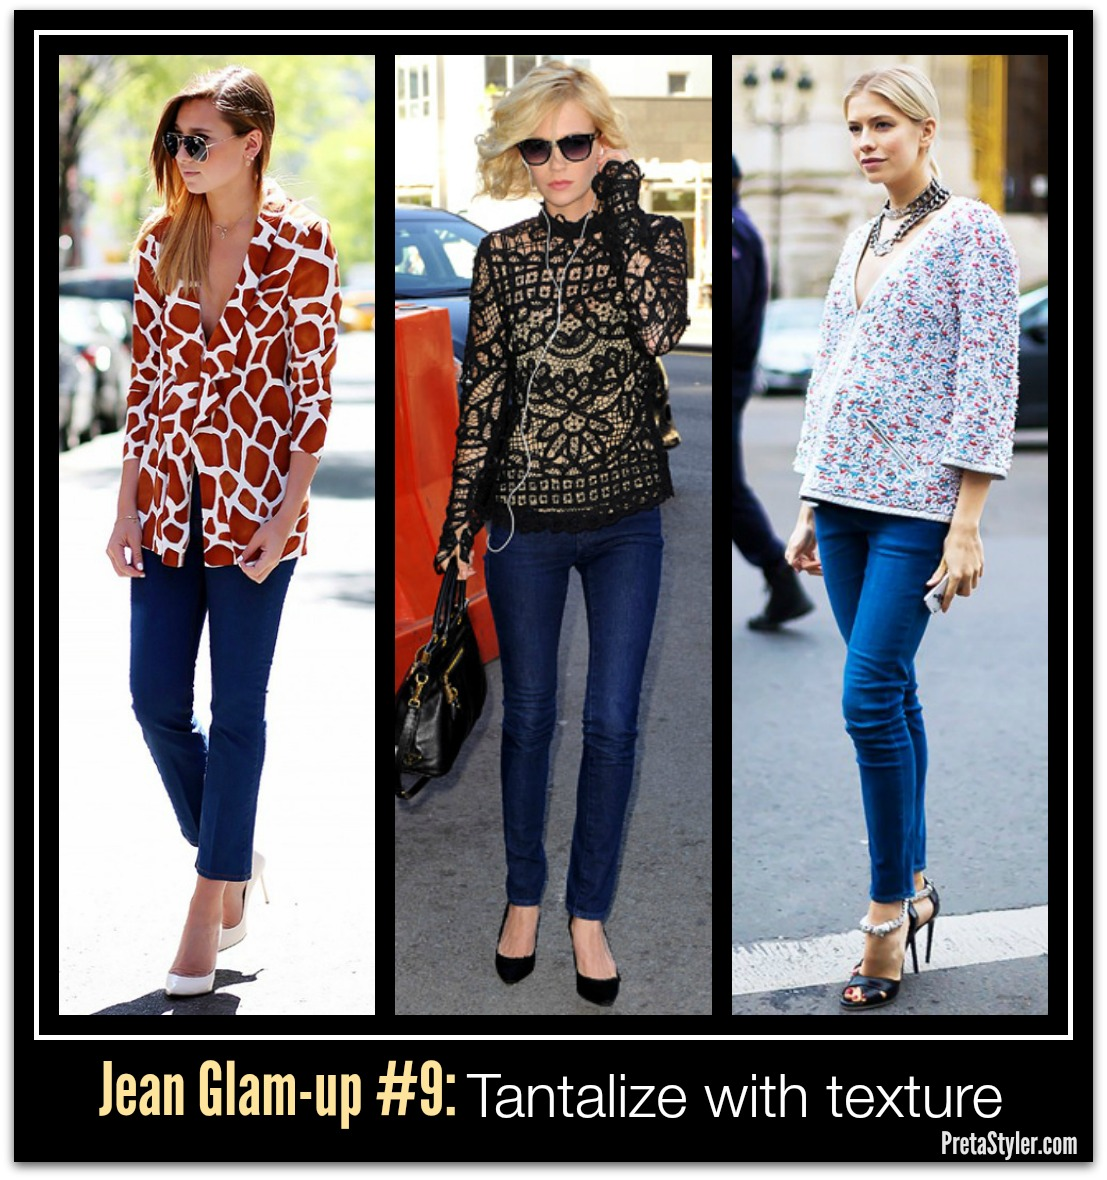 How to Glam-up Blue Jeans #9